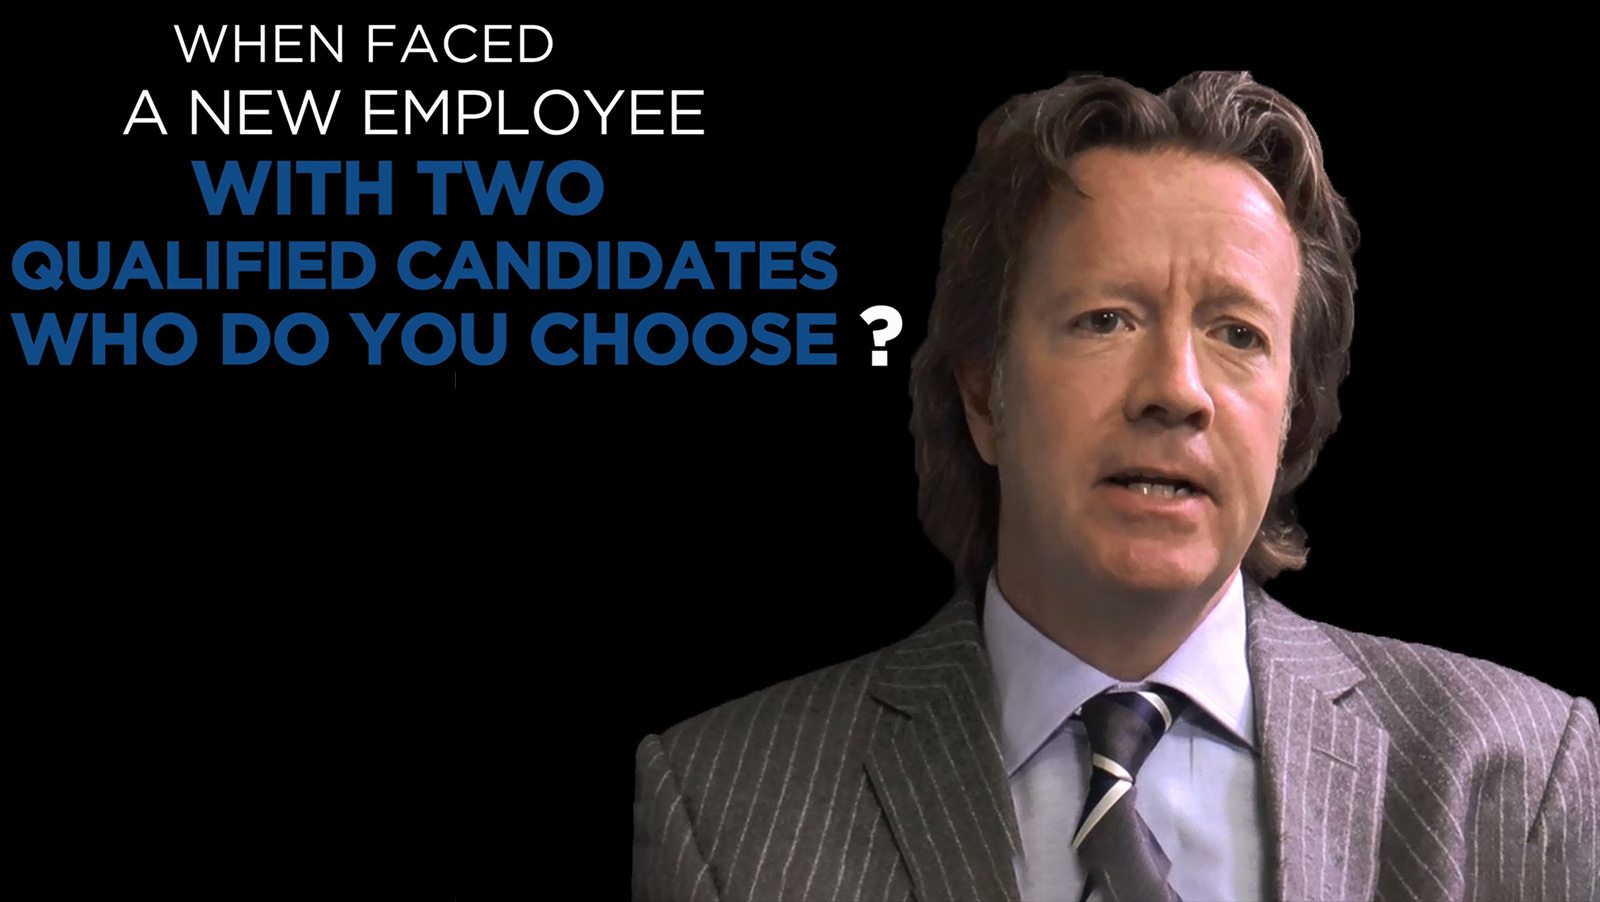 Shared Experience – When faced a new employee with two qualified candidates who do you choose?